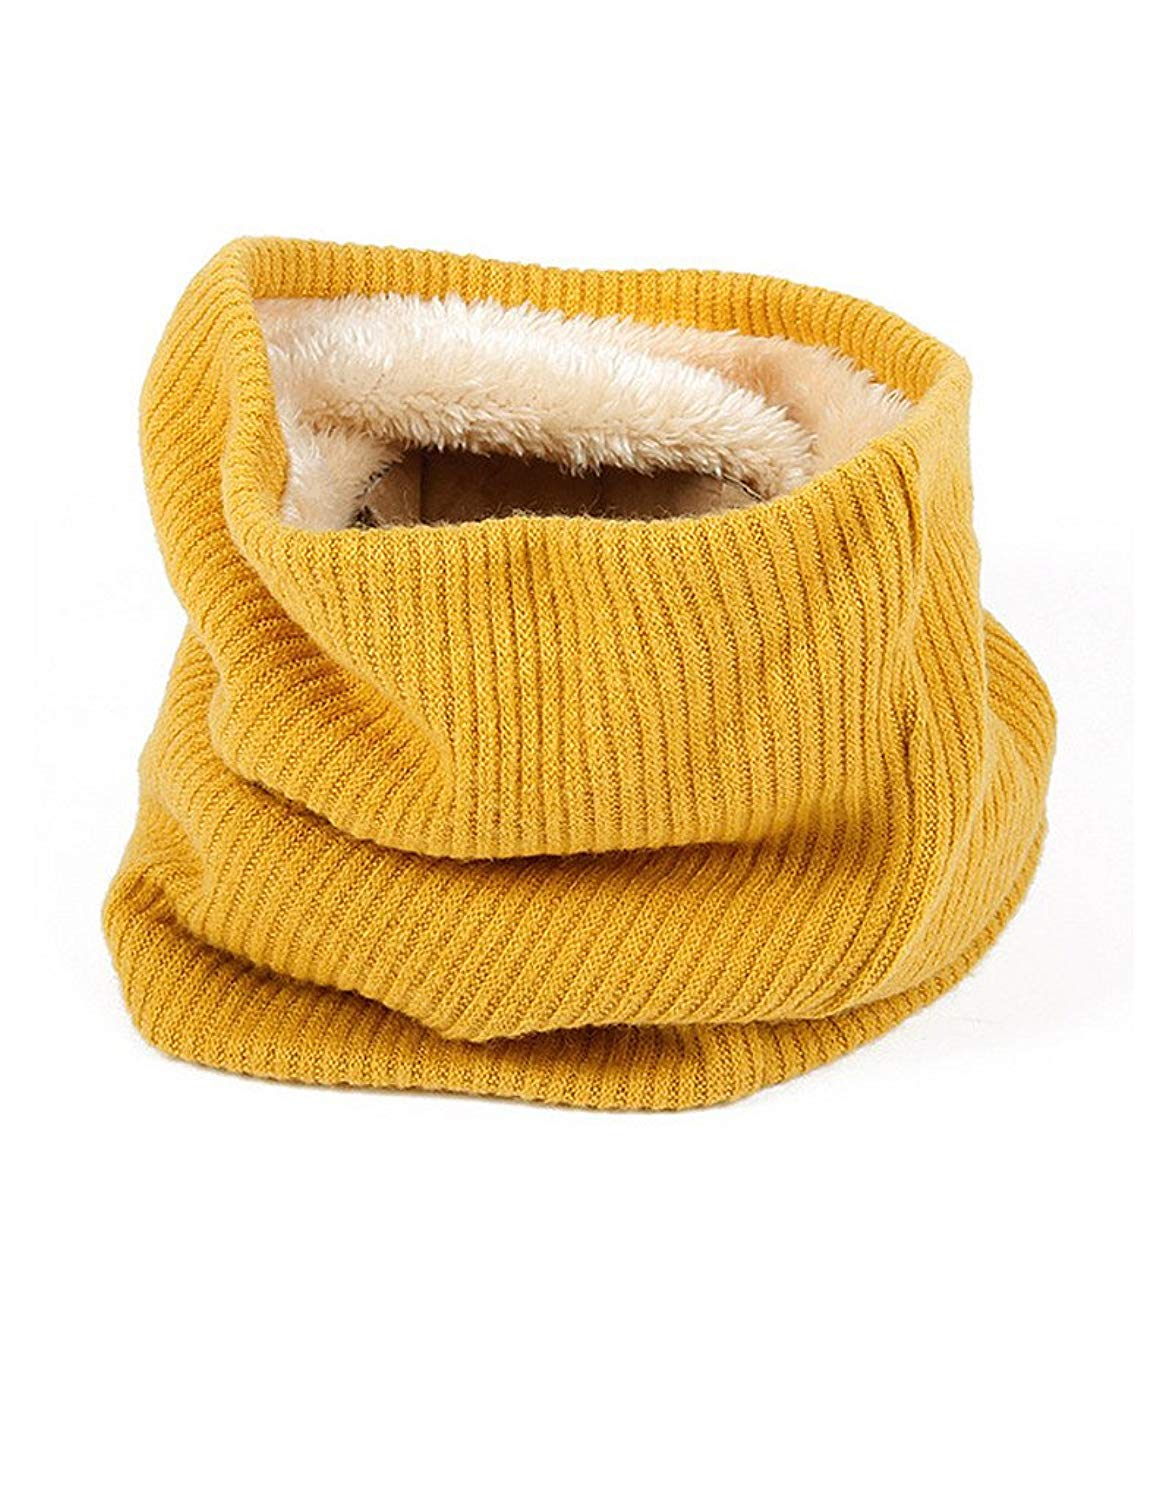 72bd4af70ab9e Get Quotations · Neck Gaiter Infinity Scarf Knit Neck Warmer Chunky Soft  Thick Circle Loop Scarves